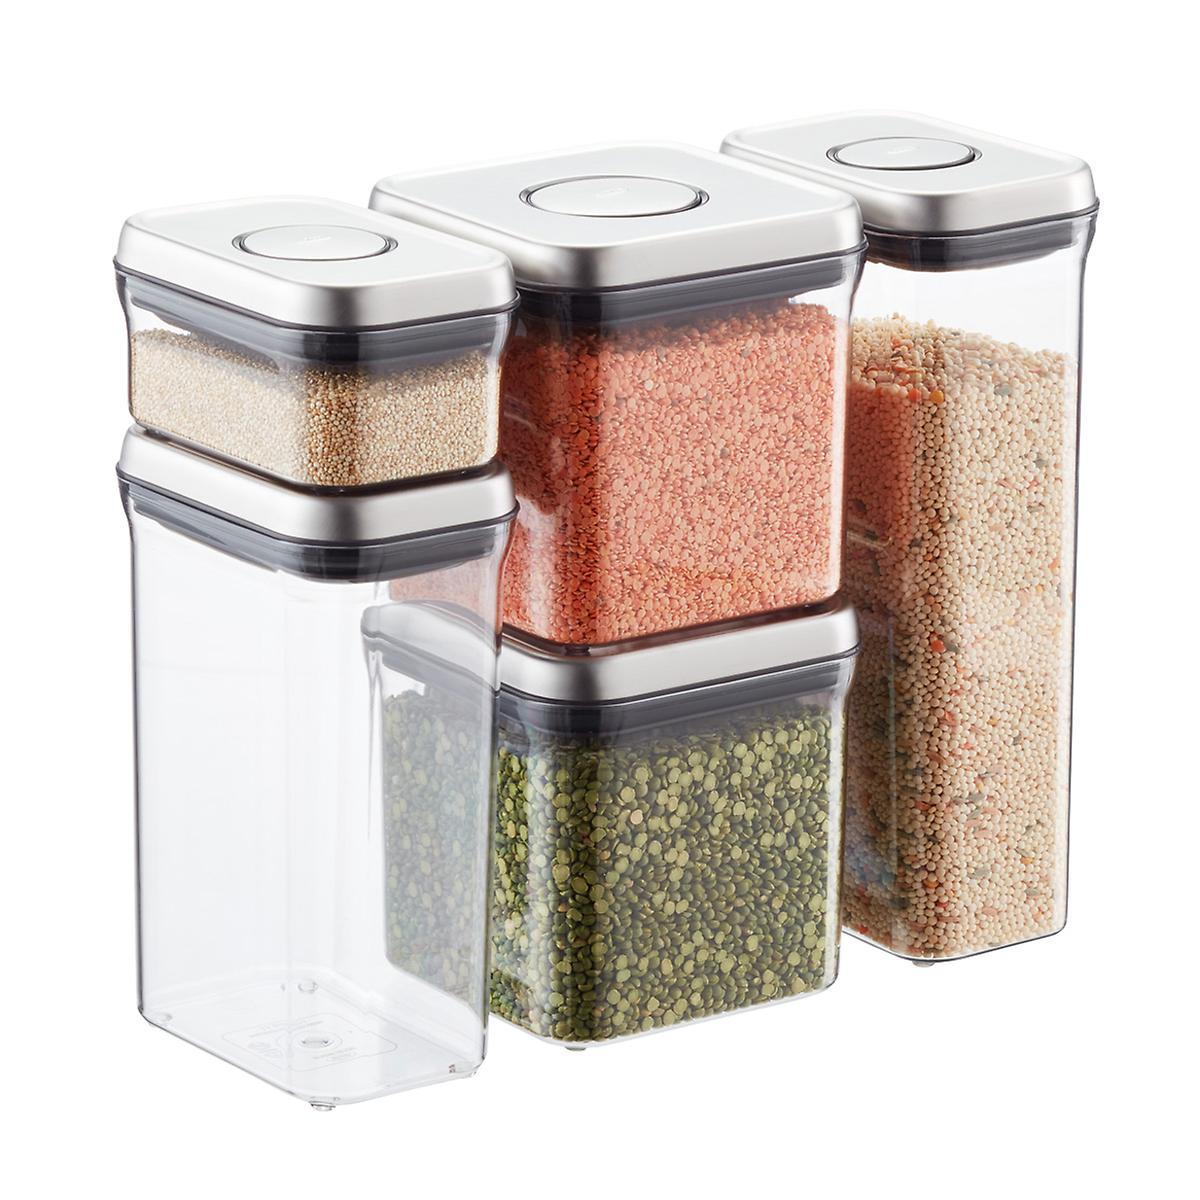 OXO Stainless Steel 5-Piece POP Canister Set